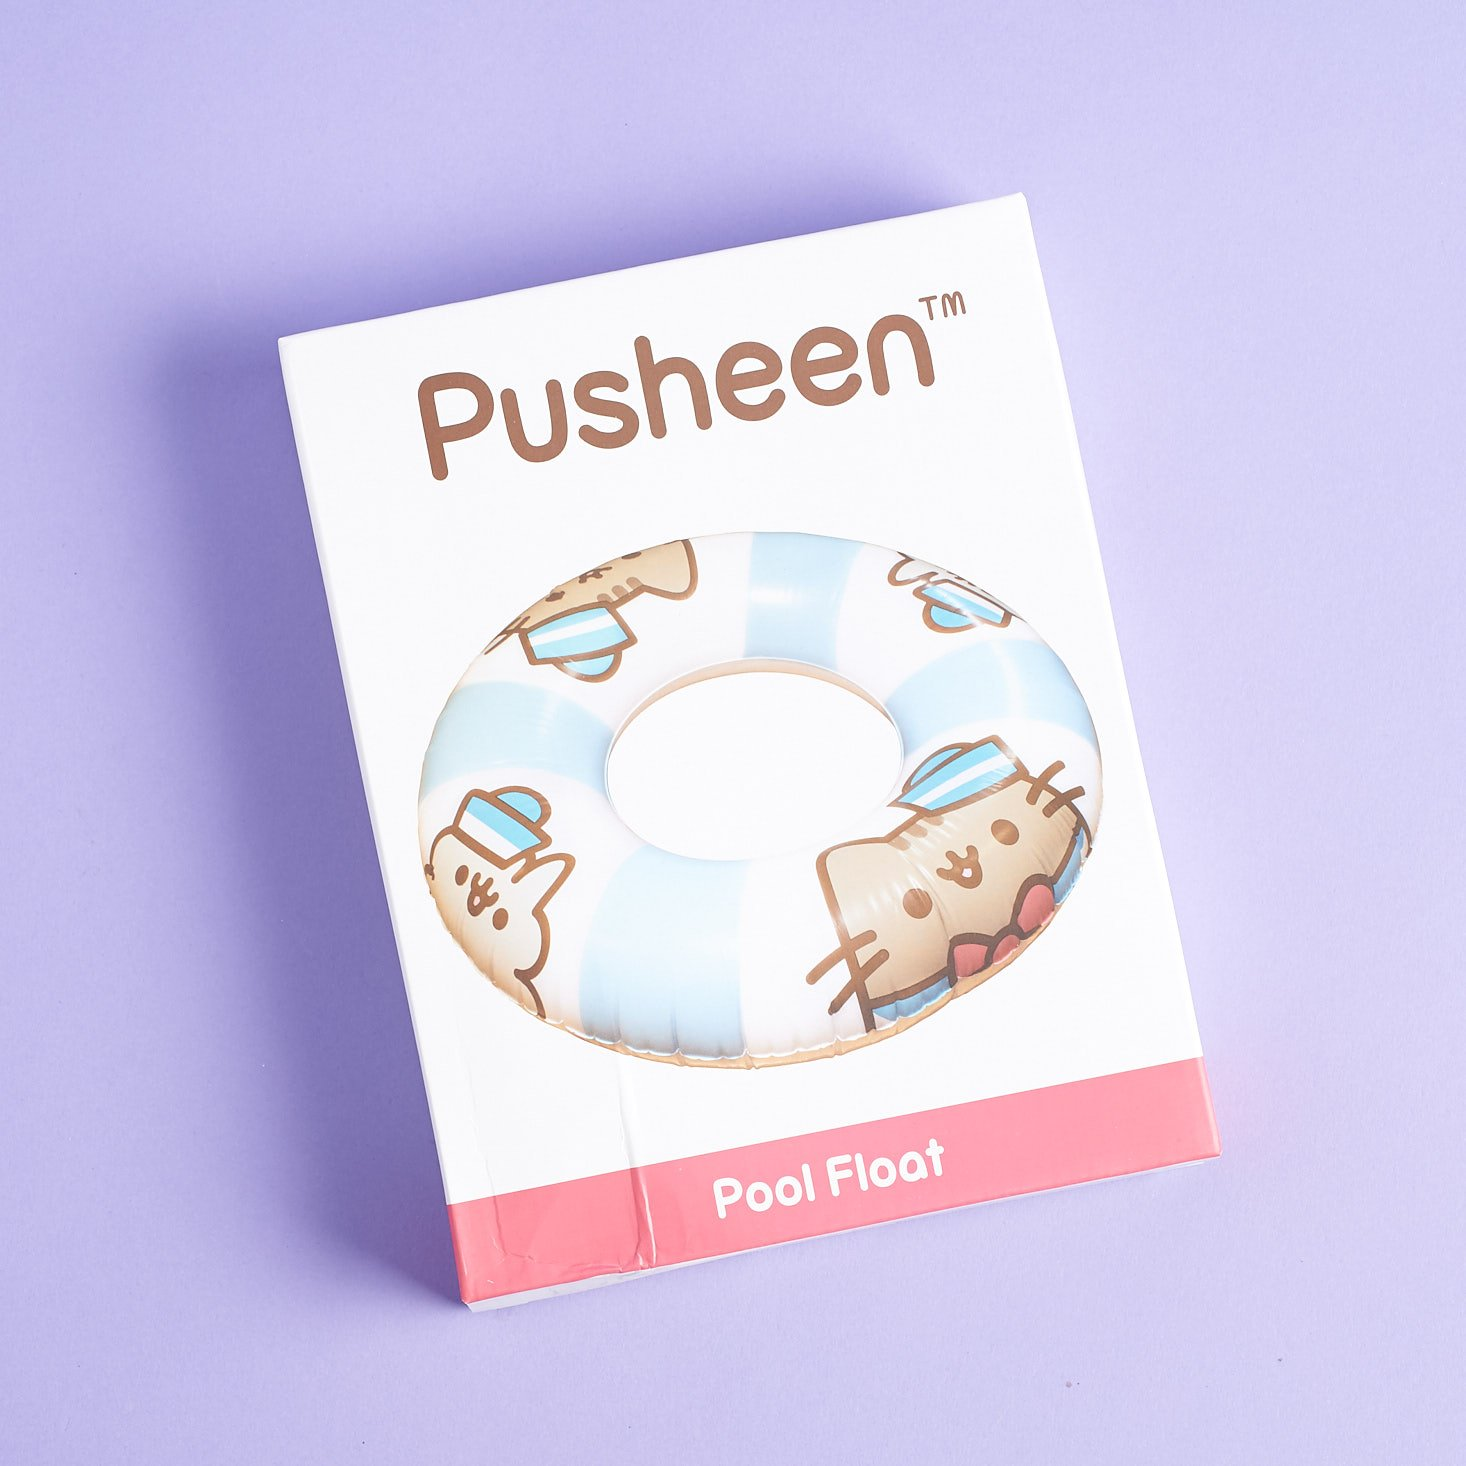 Box for Pusheen Pool Float